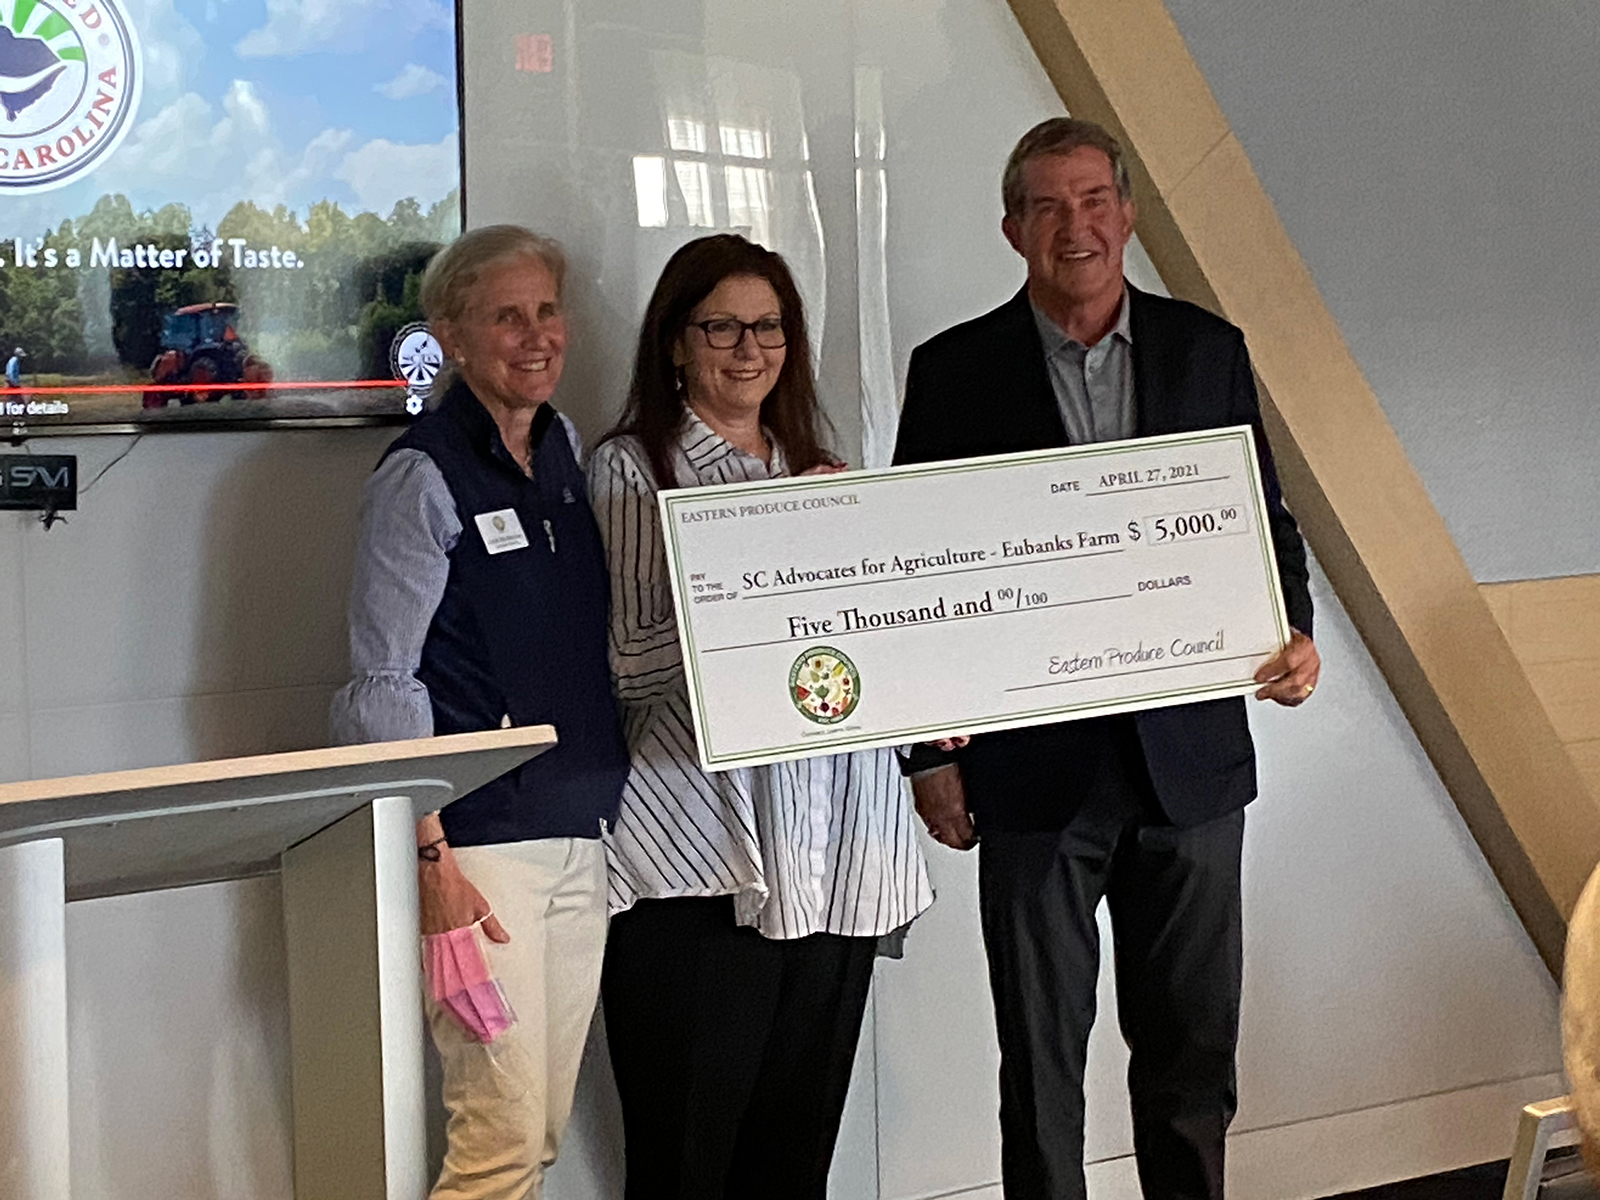 EPC's Susan McAleavey Sarlund and Marianne Santo presented Hugh Weathers of SCDA with a $5,000 check for the SC Advocates for Agriculture - Eubanks Farm.